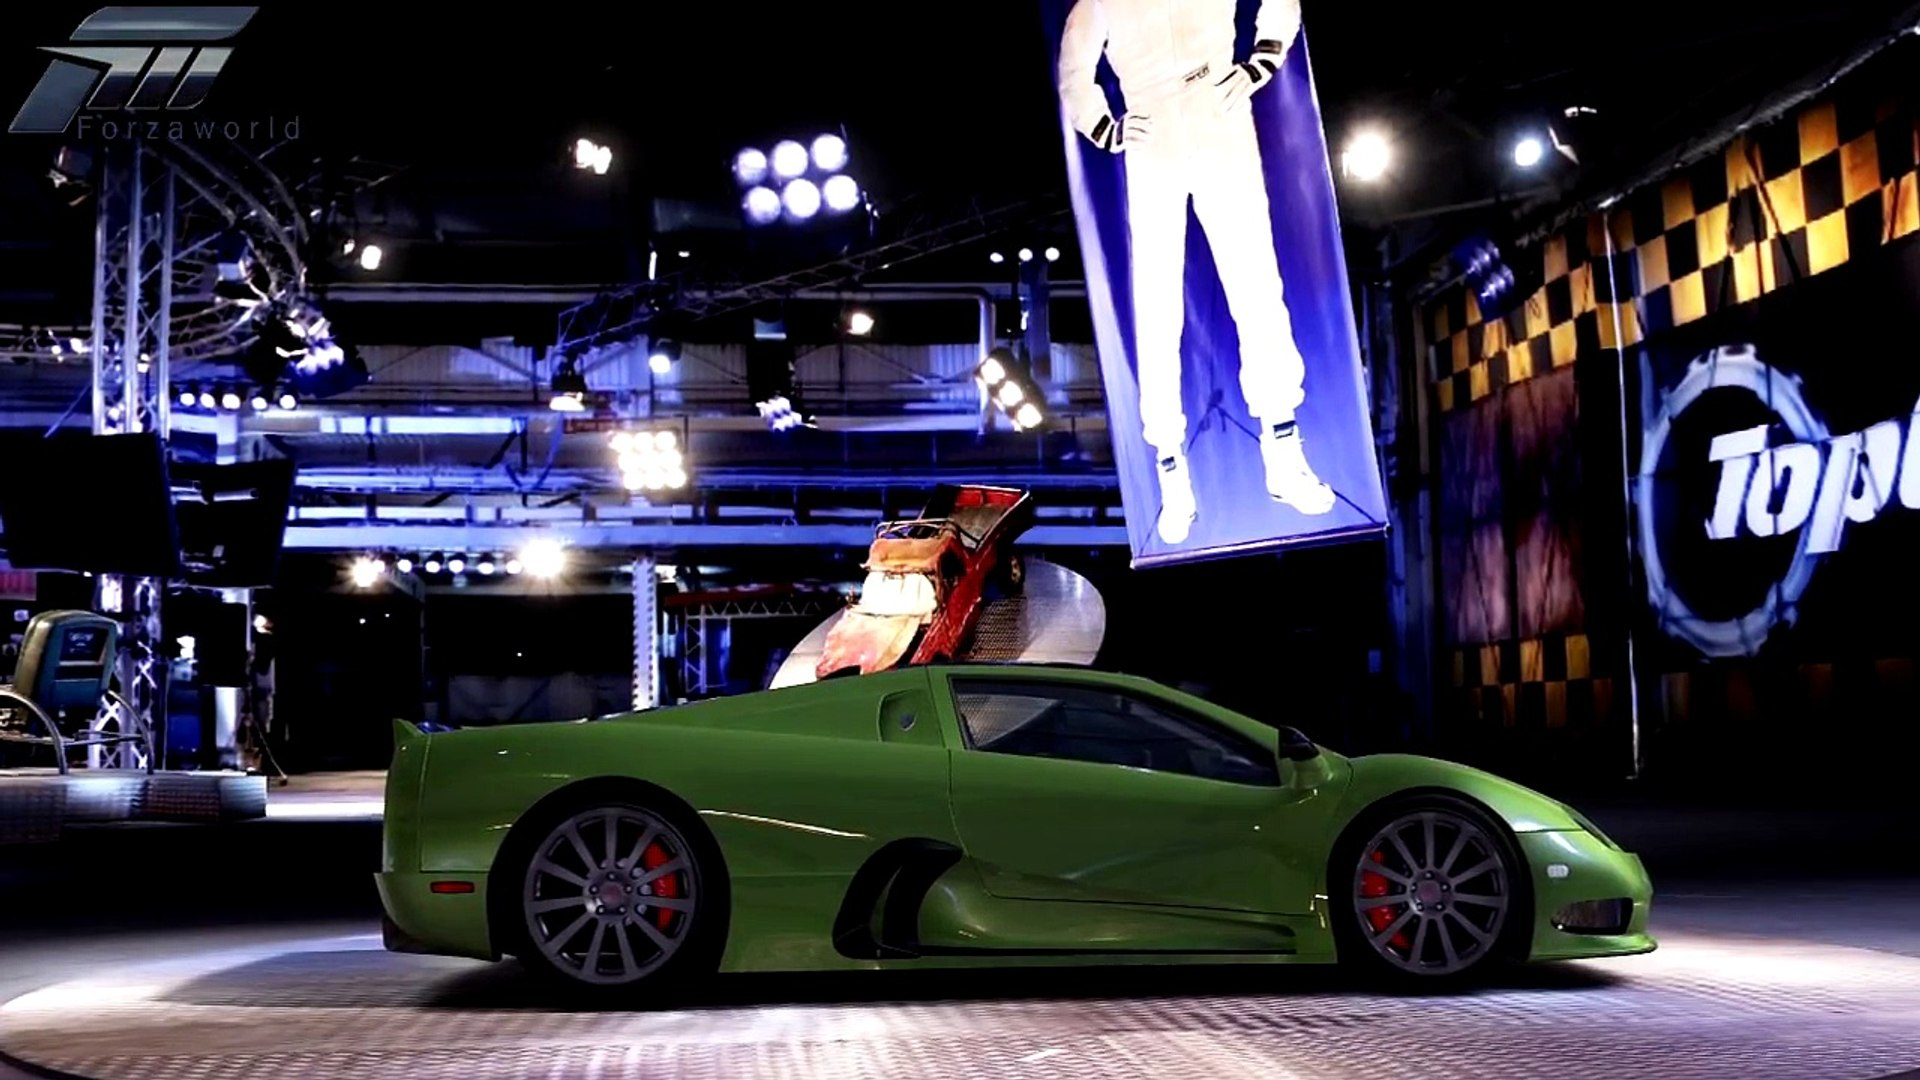 Forza 4 - SSC Ultimate Aero - Power Lap Time - Top Gear EP 18